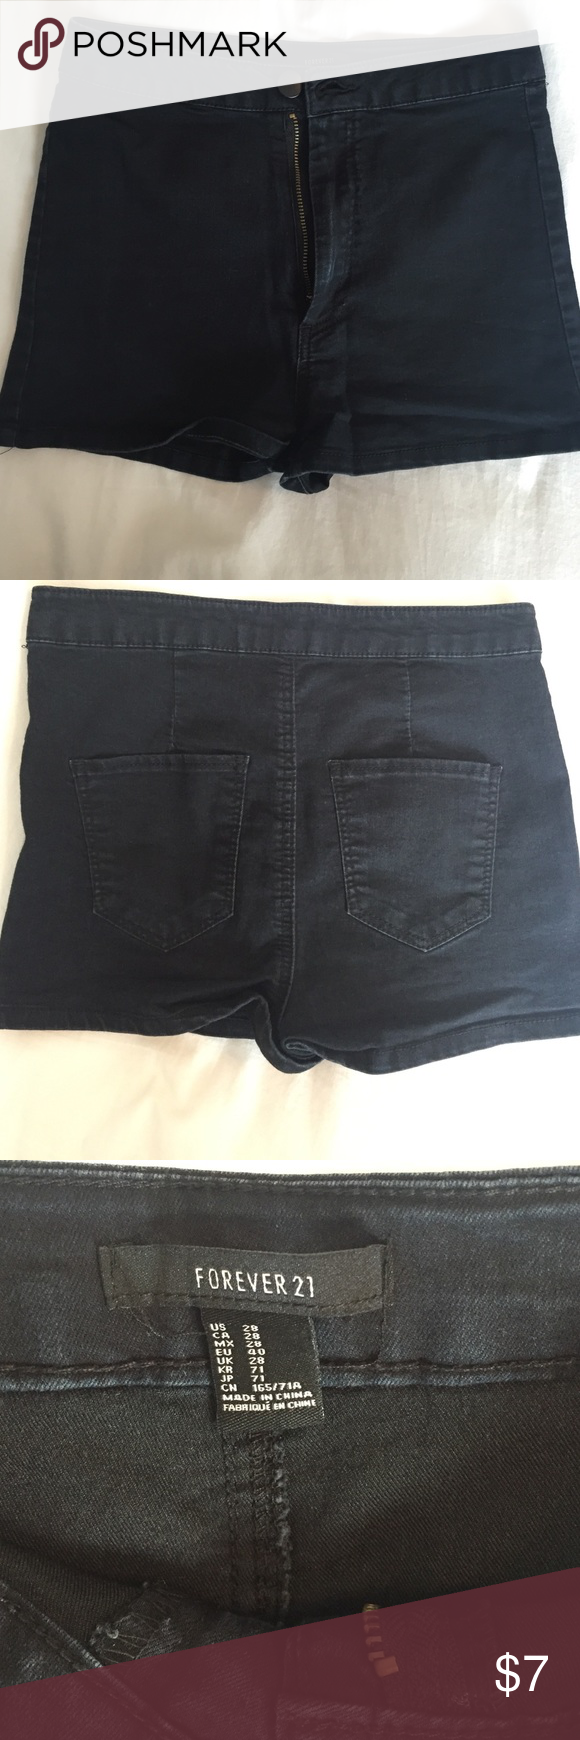 Forever21 shorts Forver21 shorts. Very stretchy material. High Rise. Size: 28 Forever 21 Shorts